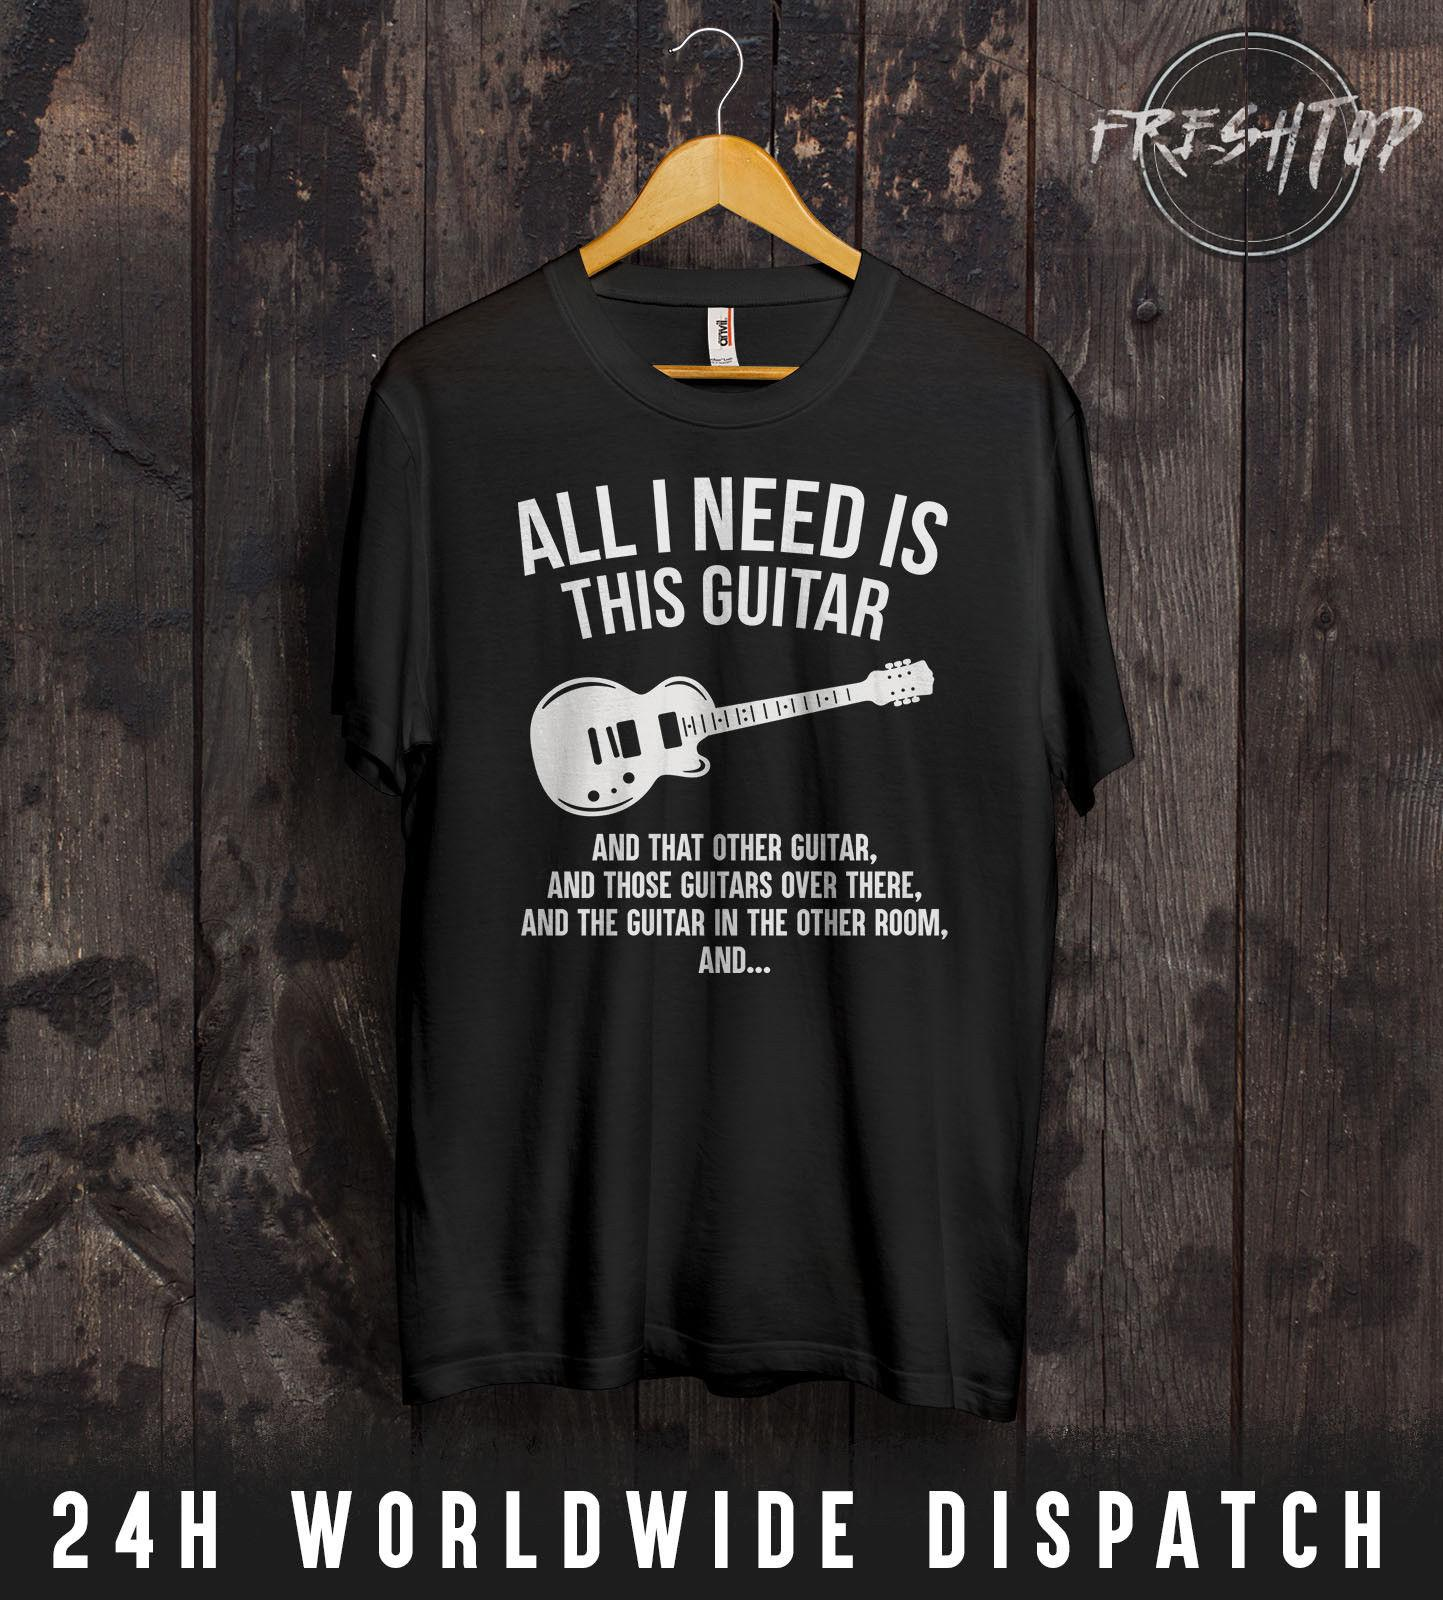 Band T Shirts Free Shipping Worldwide | Saddha